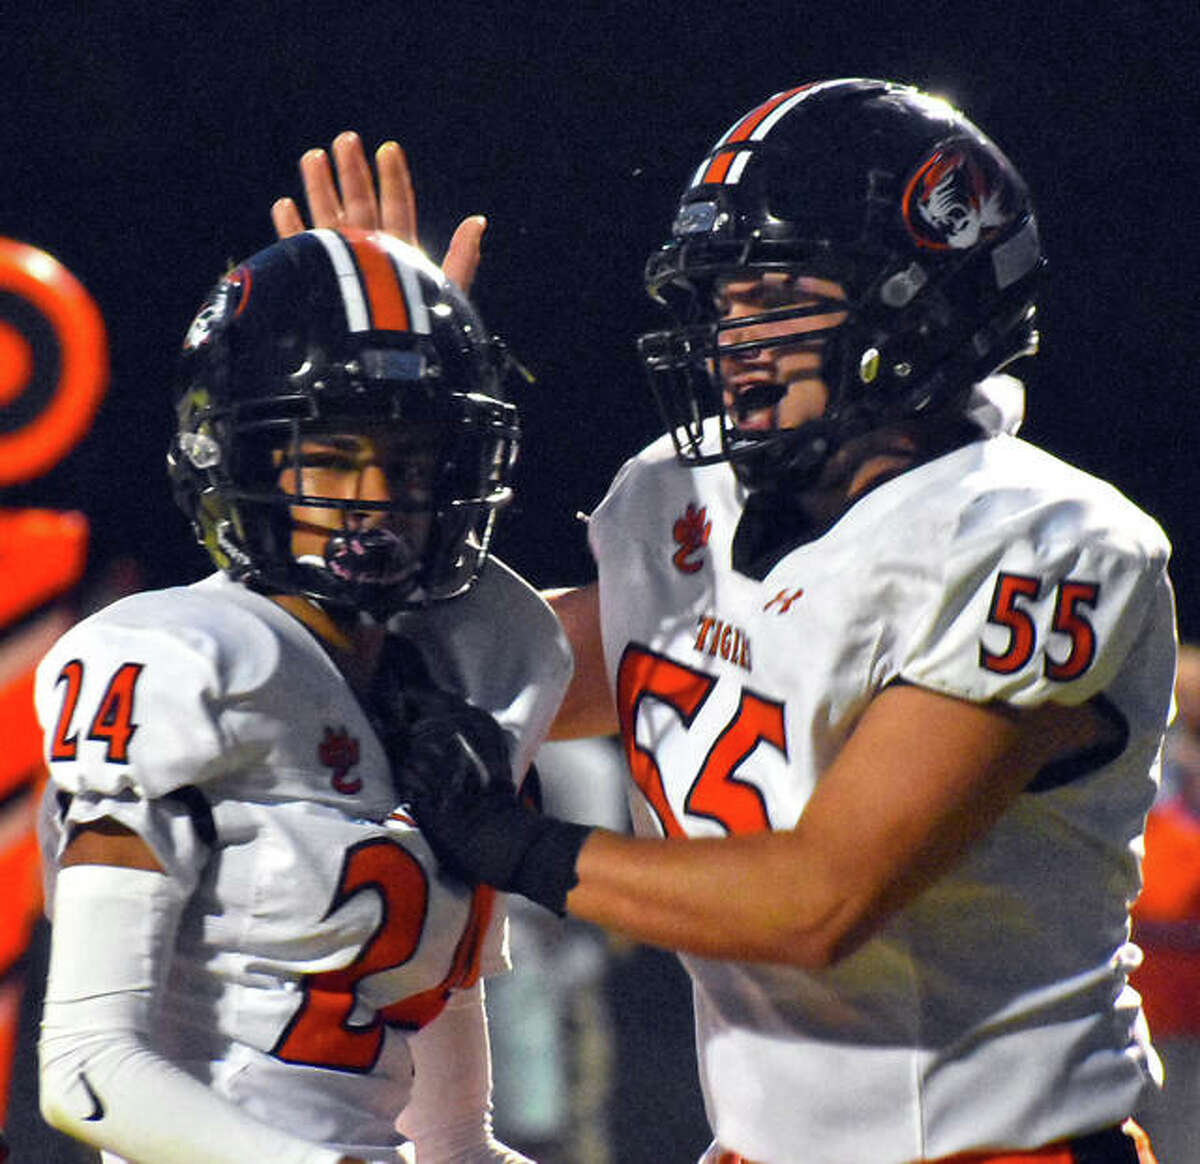 Edwardsville's David Deuanephenh, left, is congratulated by Austin Wolfe after scoring a touchdown in the second quarter against Highland on Friday.